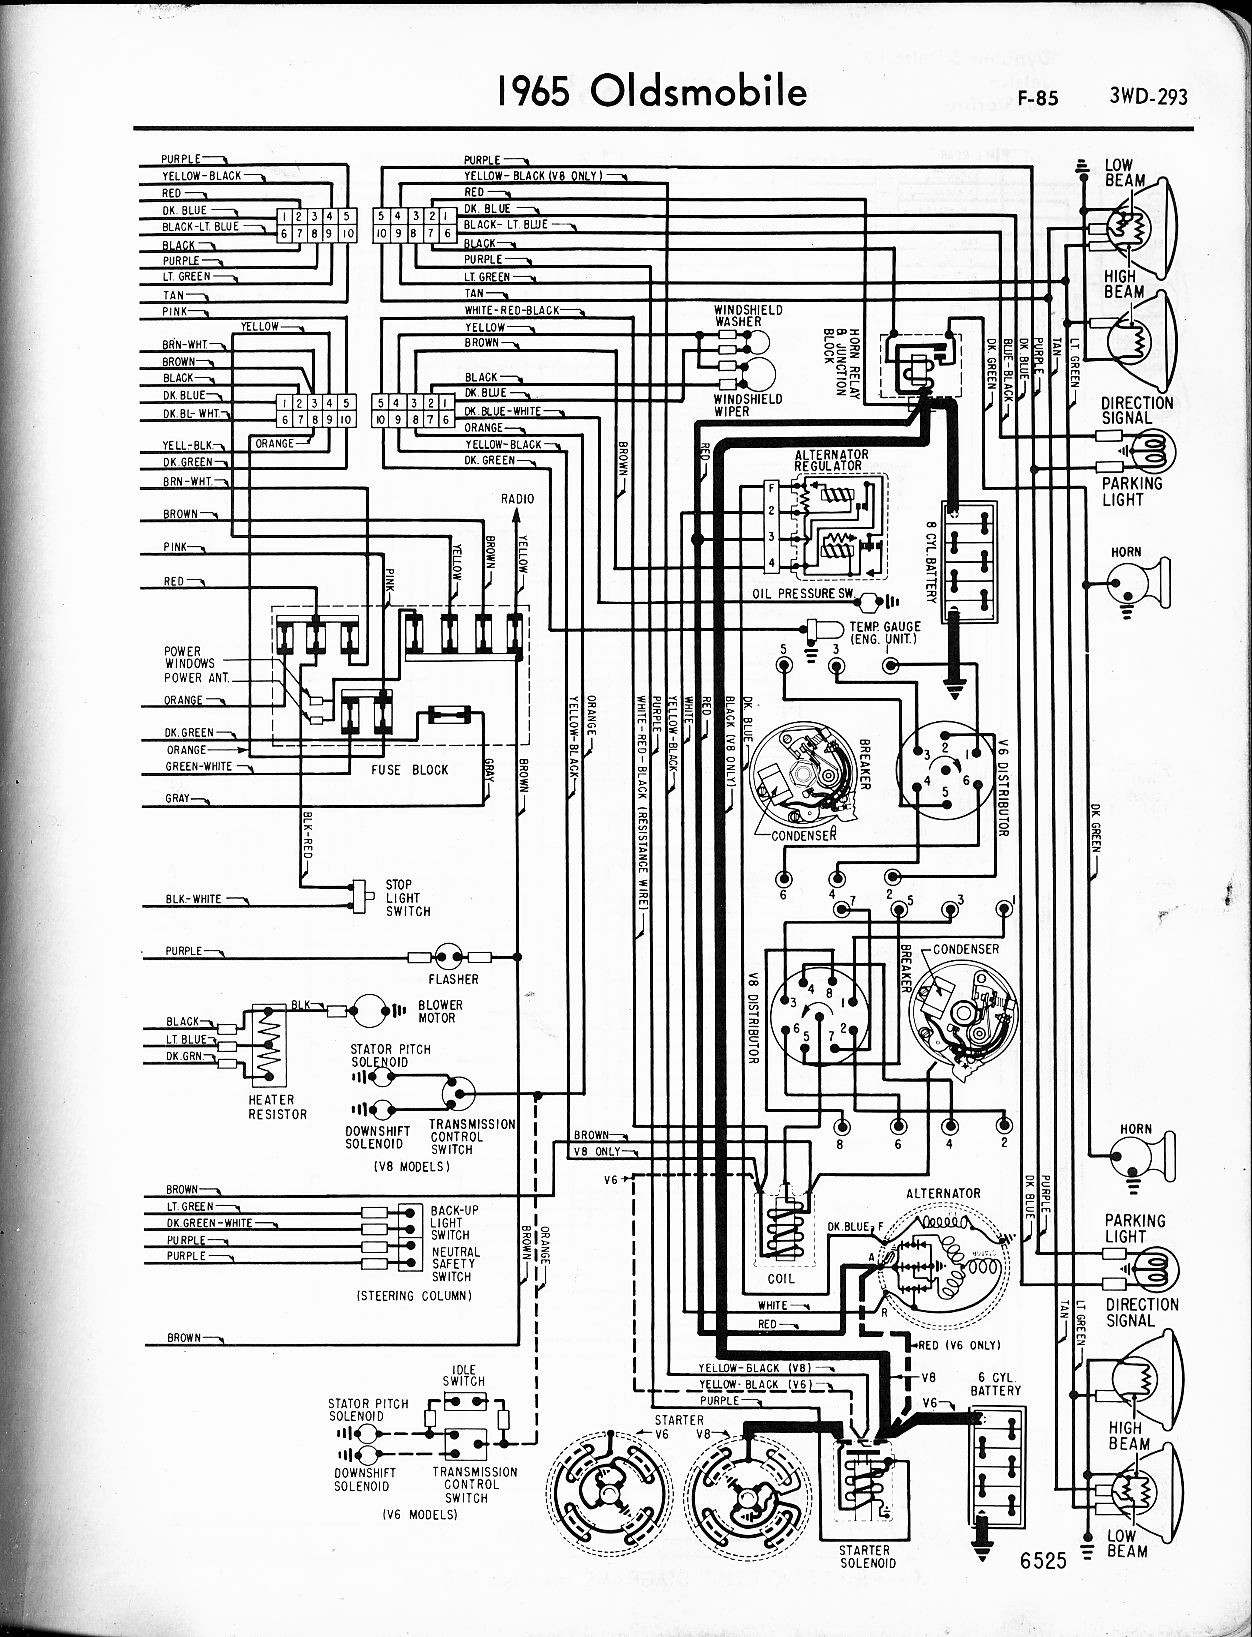 cutlass instrument wiring diagram example electrical wiring diagram u2022 rh tushtoys com 1990 Mustang Instrument Panel Wiring Diagram Pump Electrical Wiring Diagrams